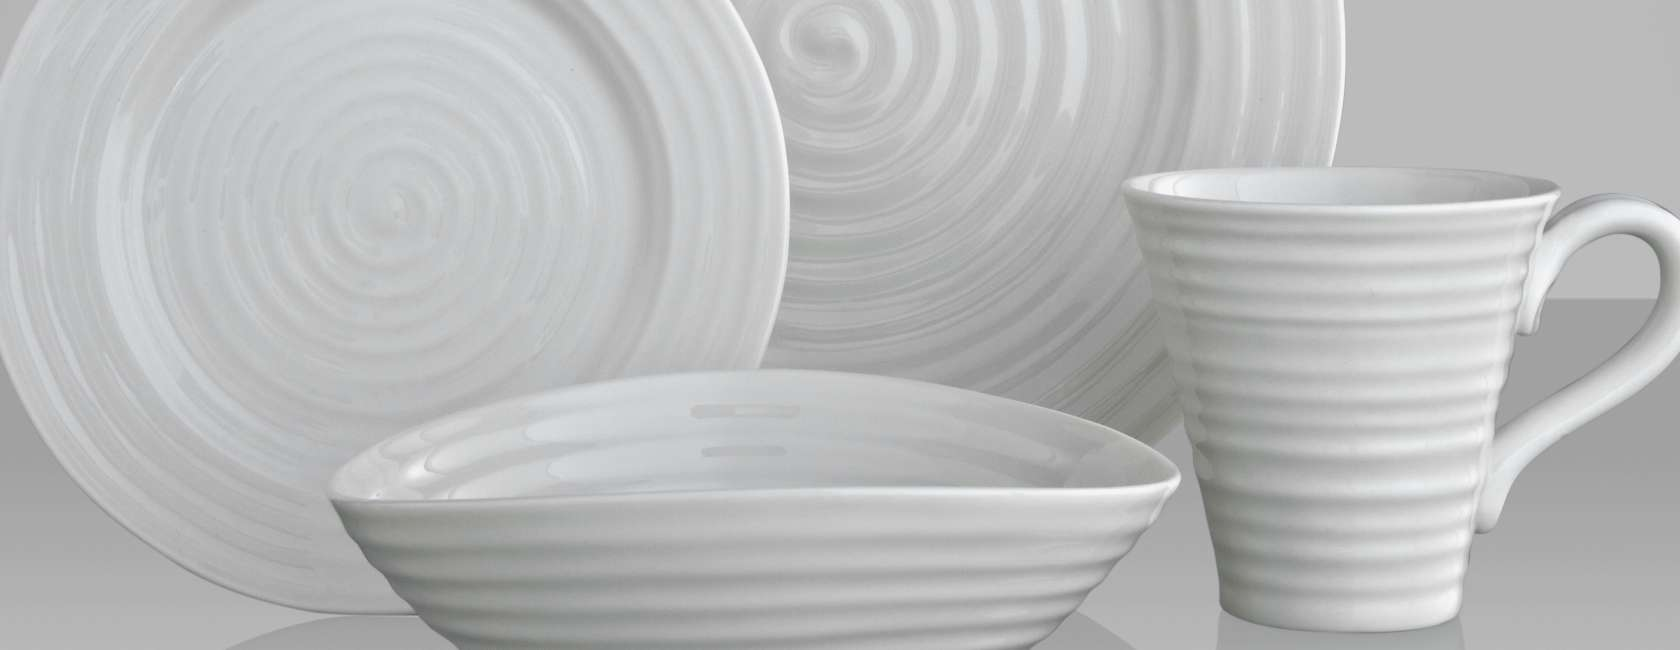 Sophie Conran for Portmeirion Tableware at John Lewis & Partners